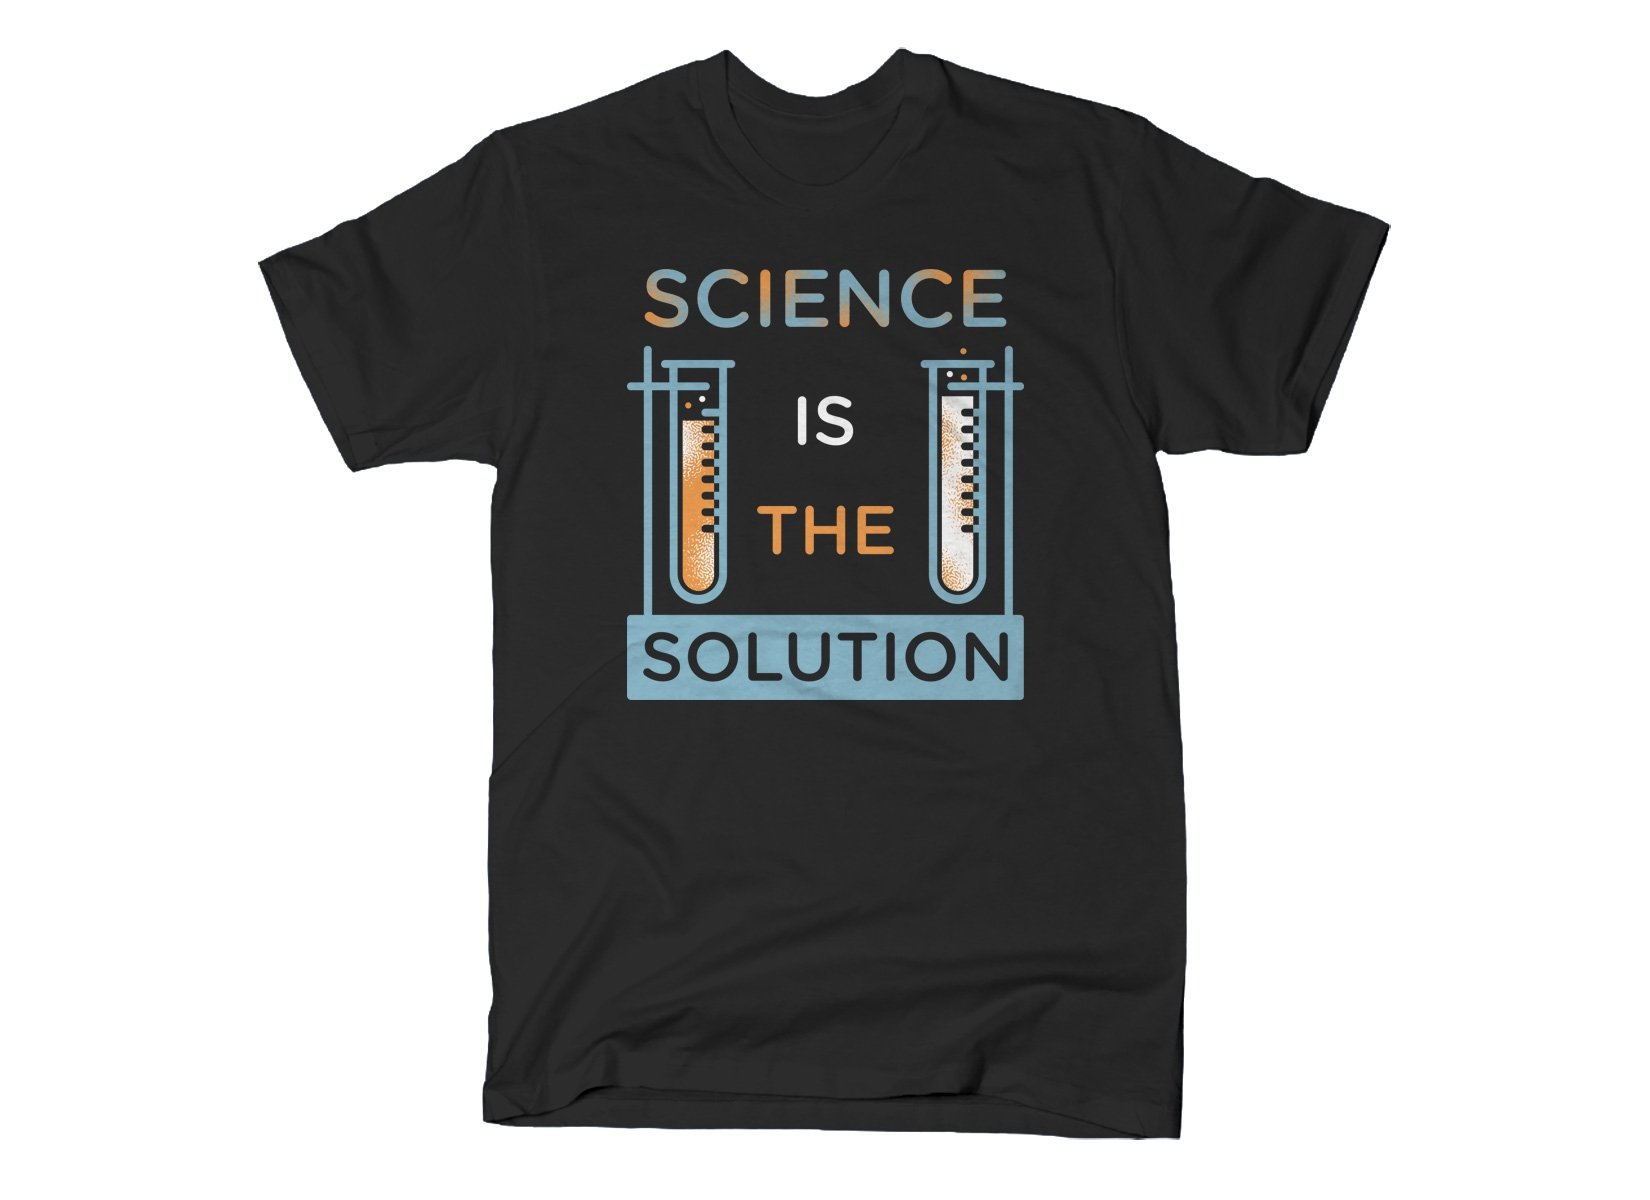 Science Is The Solution on Mens T-Shirt